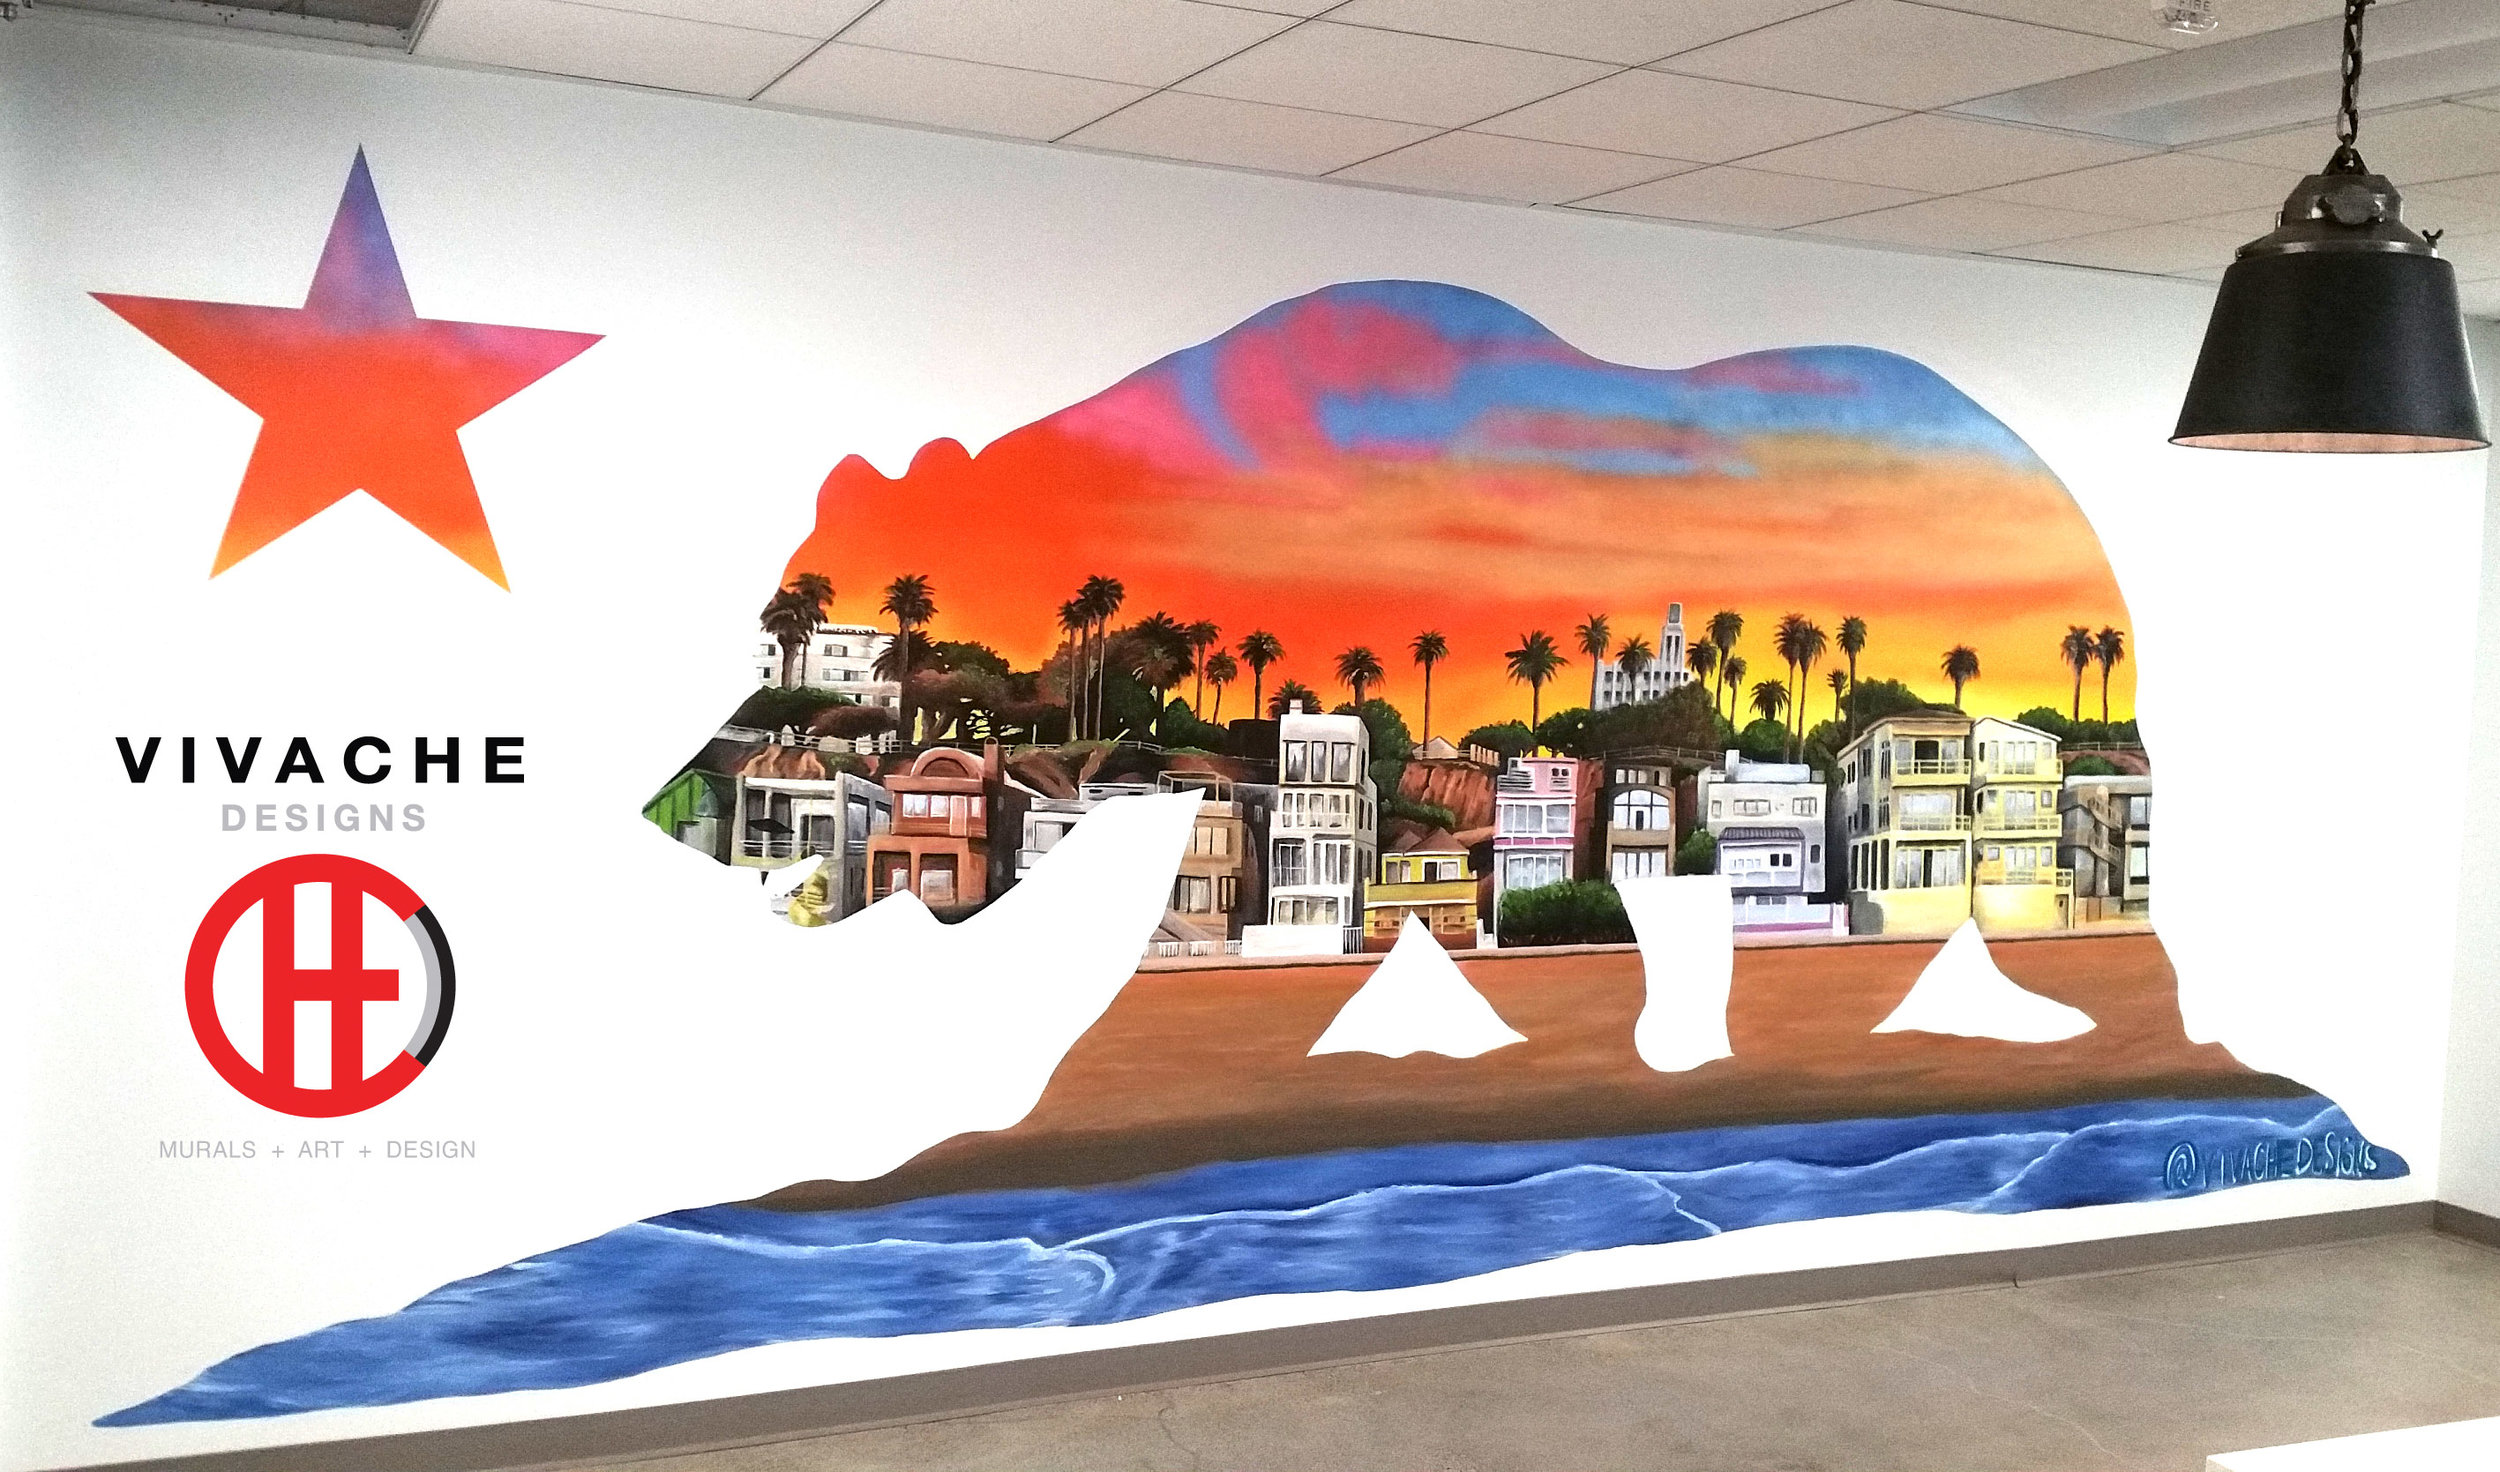 Need to hire a trusted mural painter? Vivache Designs are your 100% proven mural painters. Our mural painting skills are vast as the universe and can capture all audiences and viewing eyes. Give us a call for your free quote today 1-866-VIVACHE. We look forward to hearing more about your mural painting project.